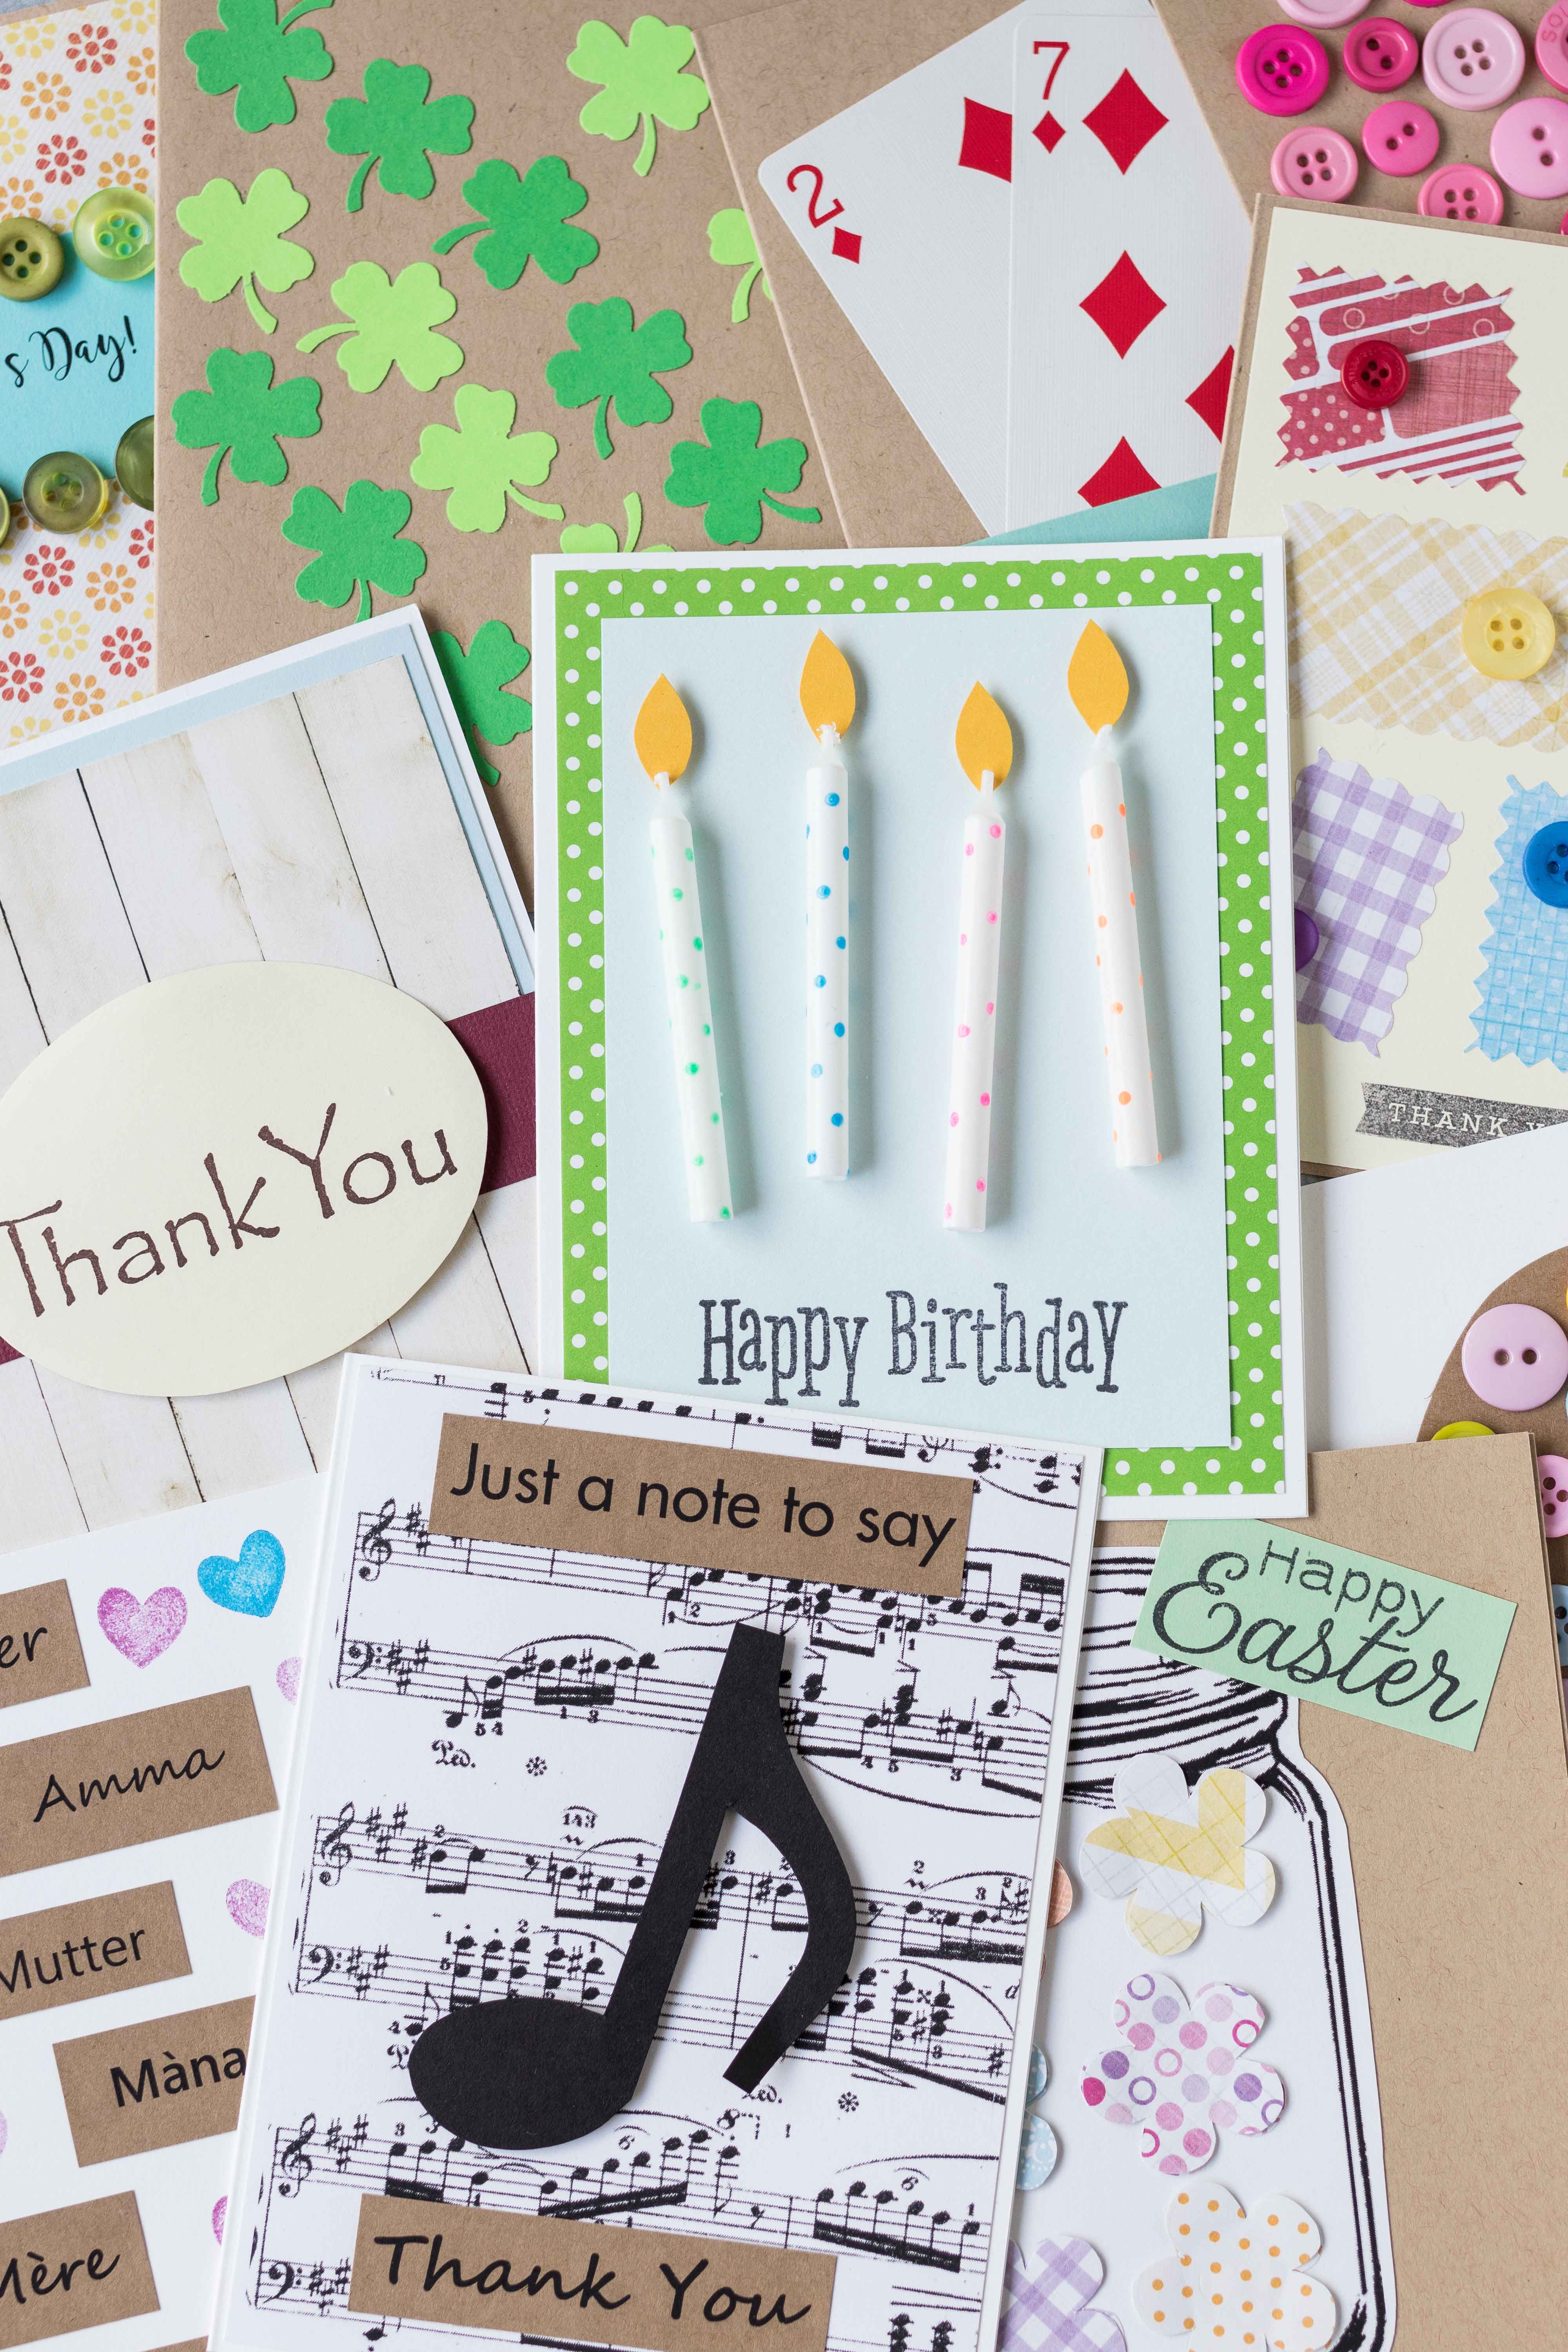 Learning to make greeting cards is simple and fun with the right tools! Learn to create professional cards to sell on Etsy or simply to give to loved ones. #greetingcardmaking #cardmakingsupplies #basiccraftsupplies | https://www.roseclearfield.com